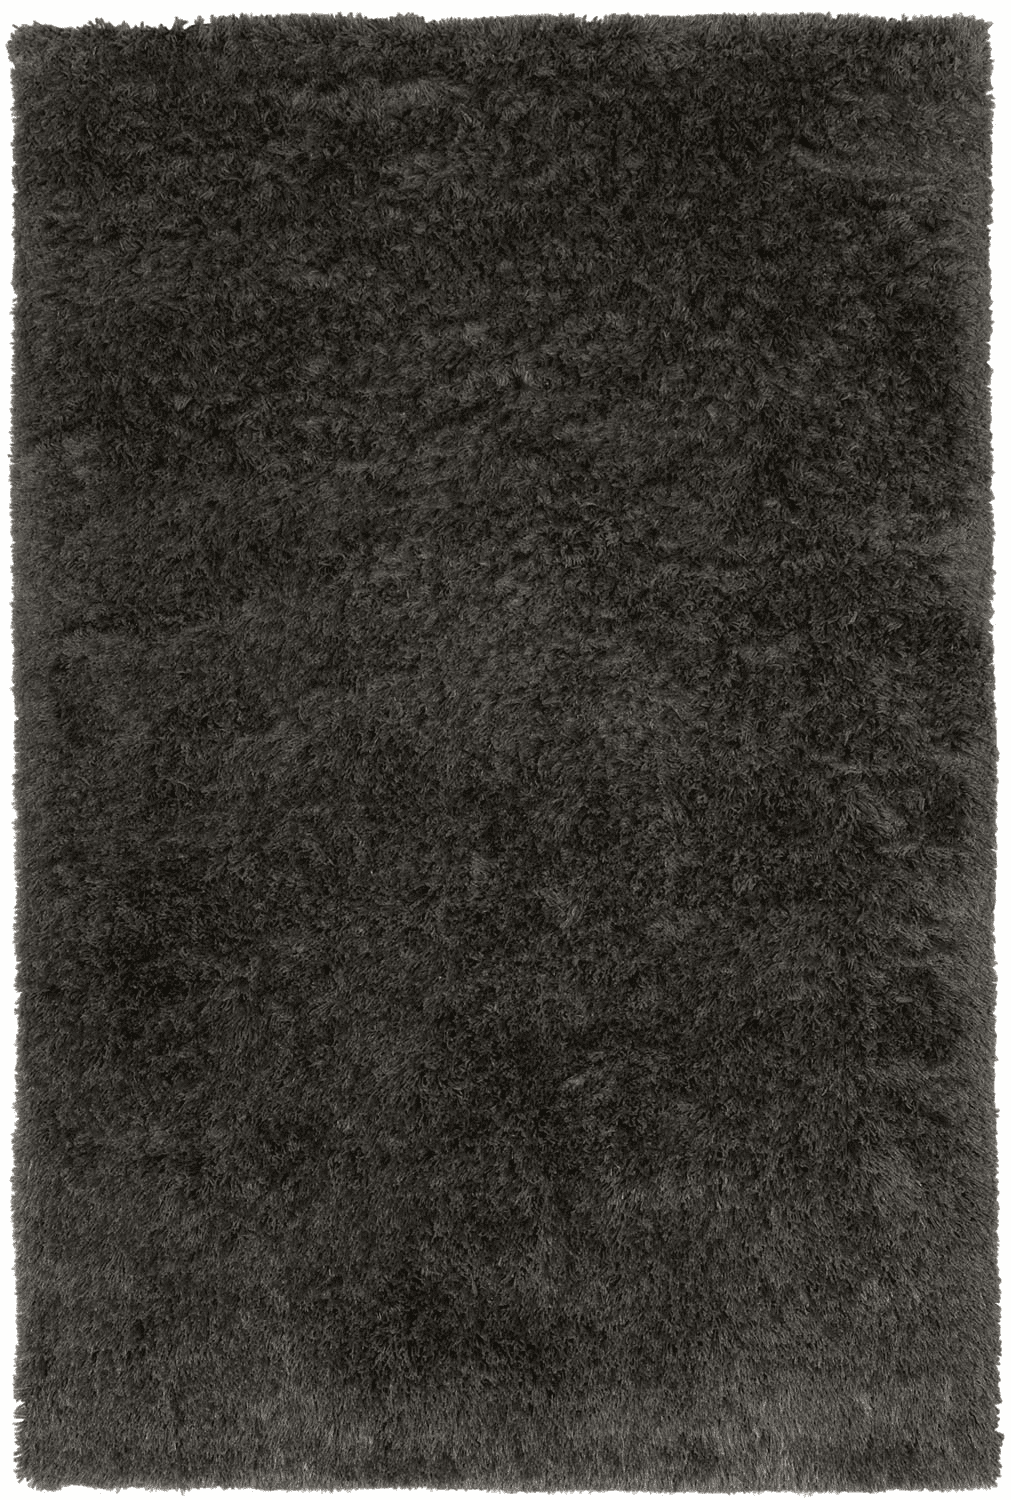 Hand Tufted Dark Grey Rug